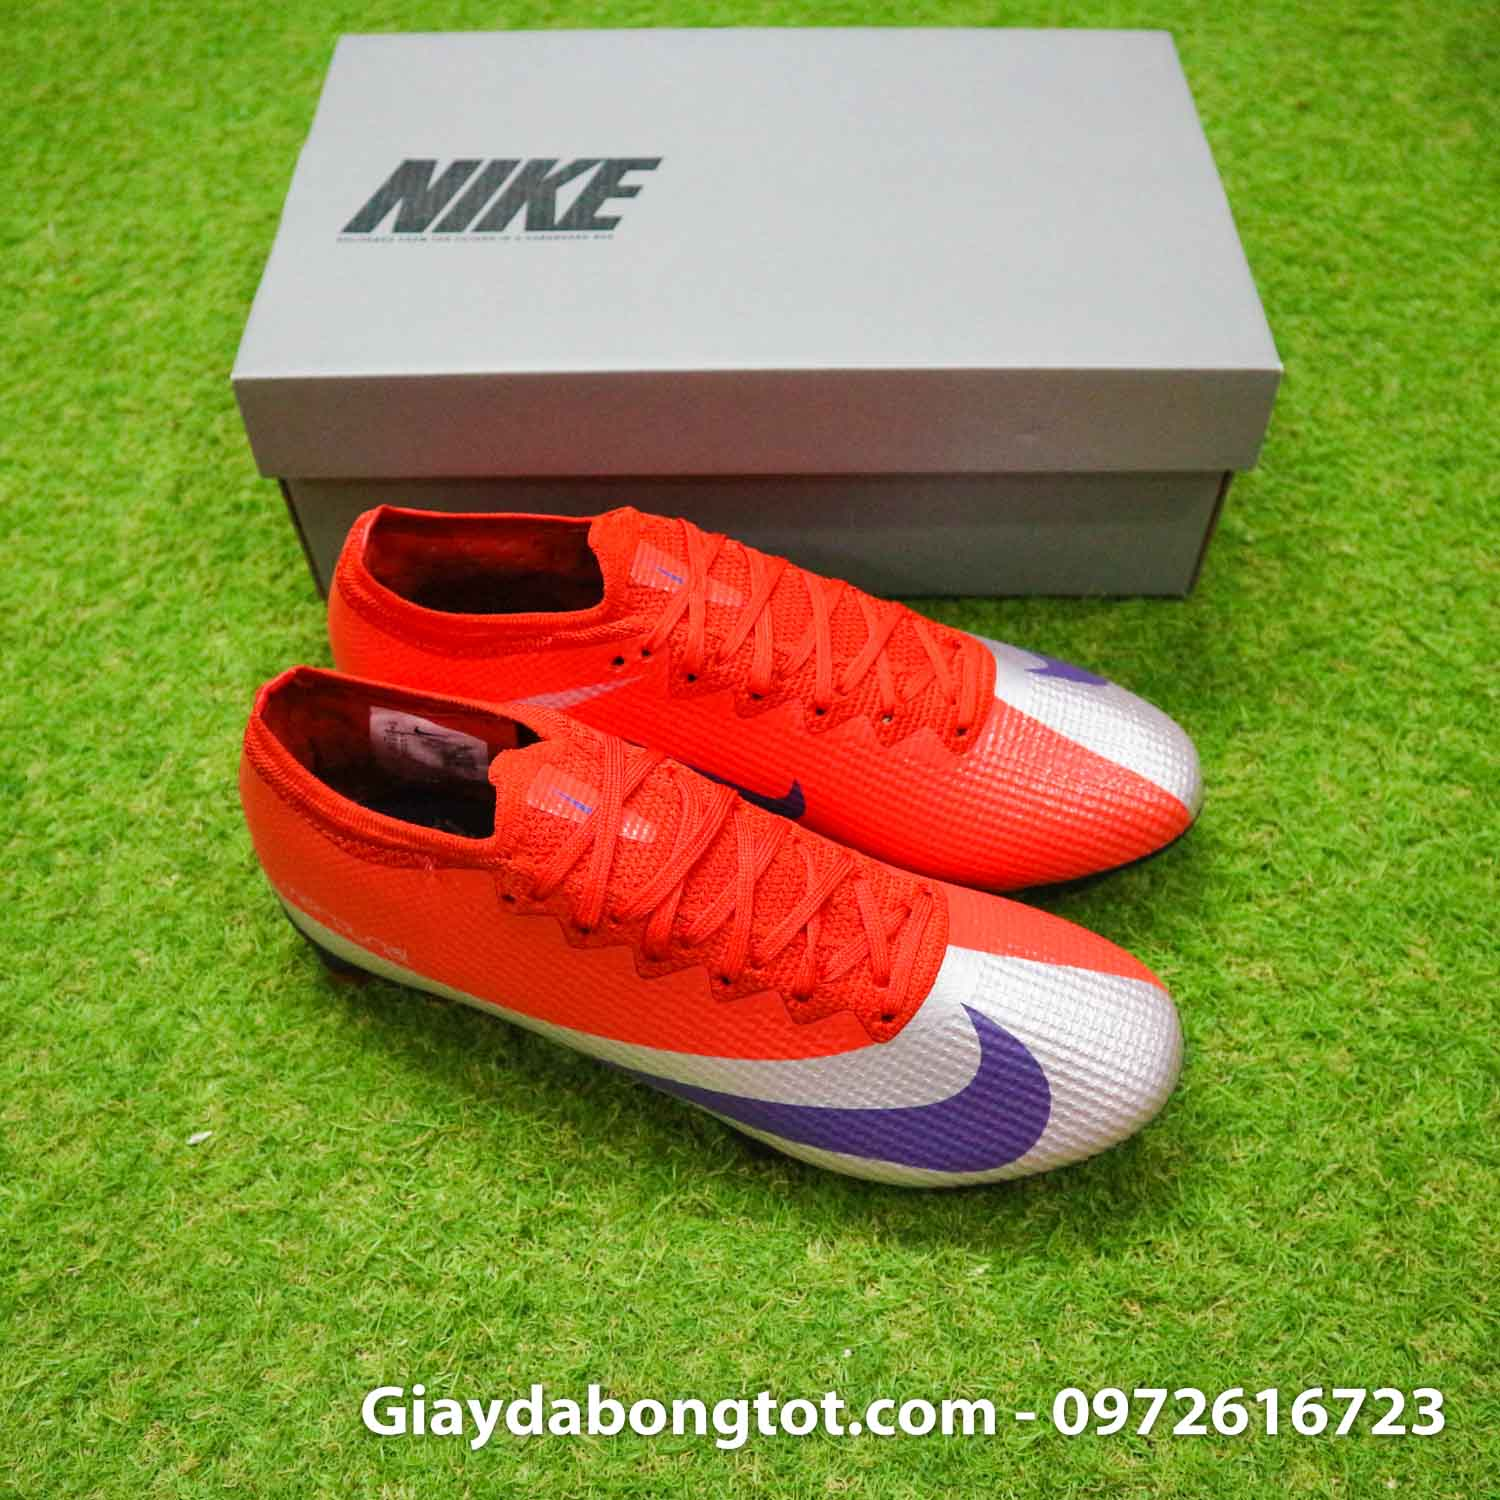 Giay bong da nike mercurial vapor 13 elite fg do bac future dna (9)